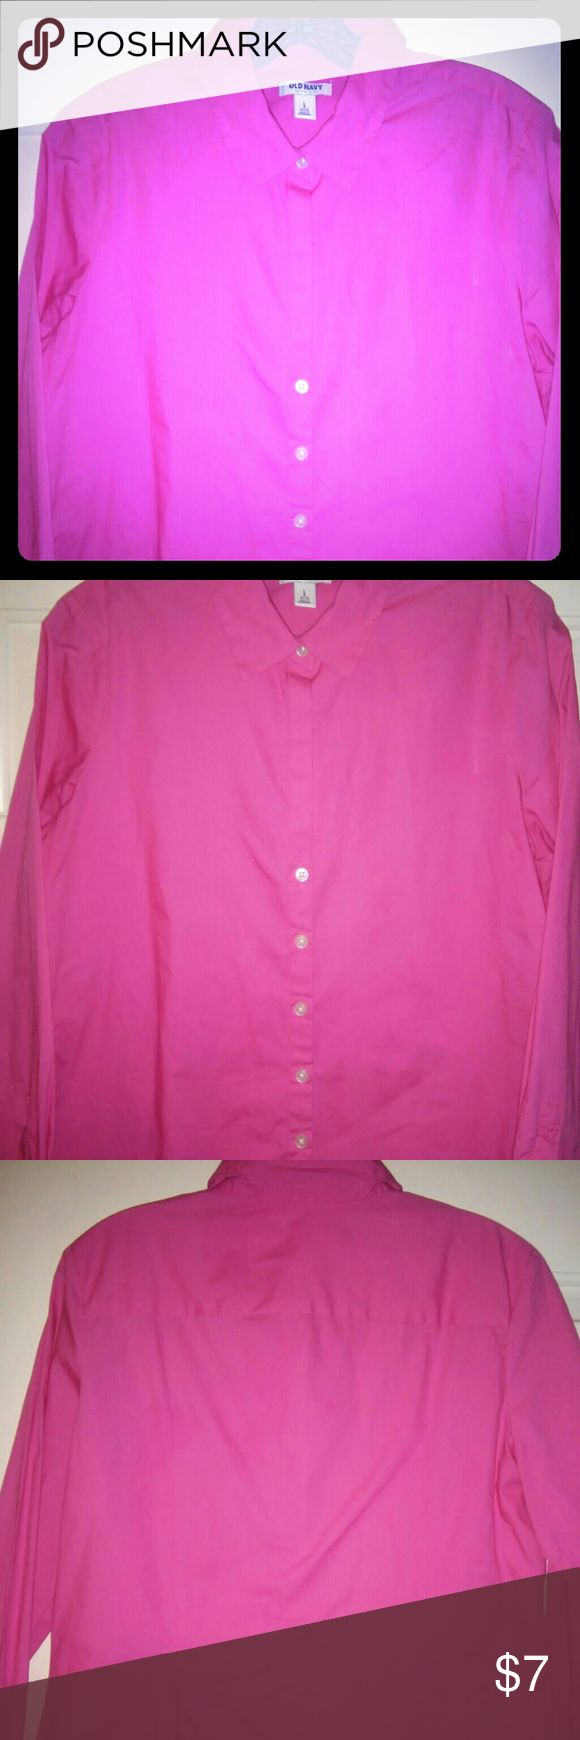 Old Navy Hot Pink shirt Add some brightness to your work outfit. Hot pink 100% cotton, front button shirt features two button cuffs and slight princess seaming in back for a closer fit. 23 inch length from collar to hem, 21 inch sleeves. Good used condition, no stains or damage. Machine wash, tumble dry. Old Navy Tops Button Down Shirts